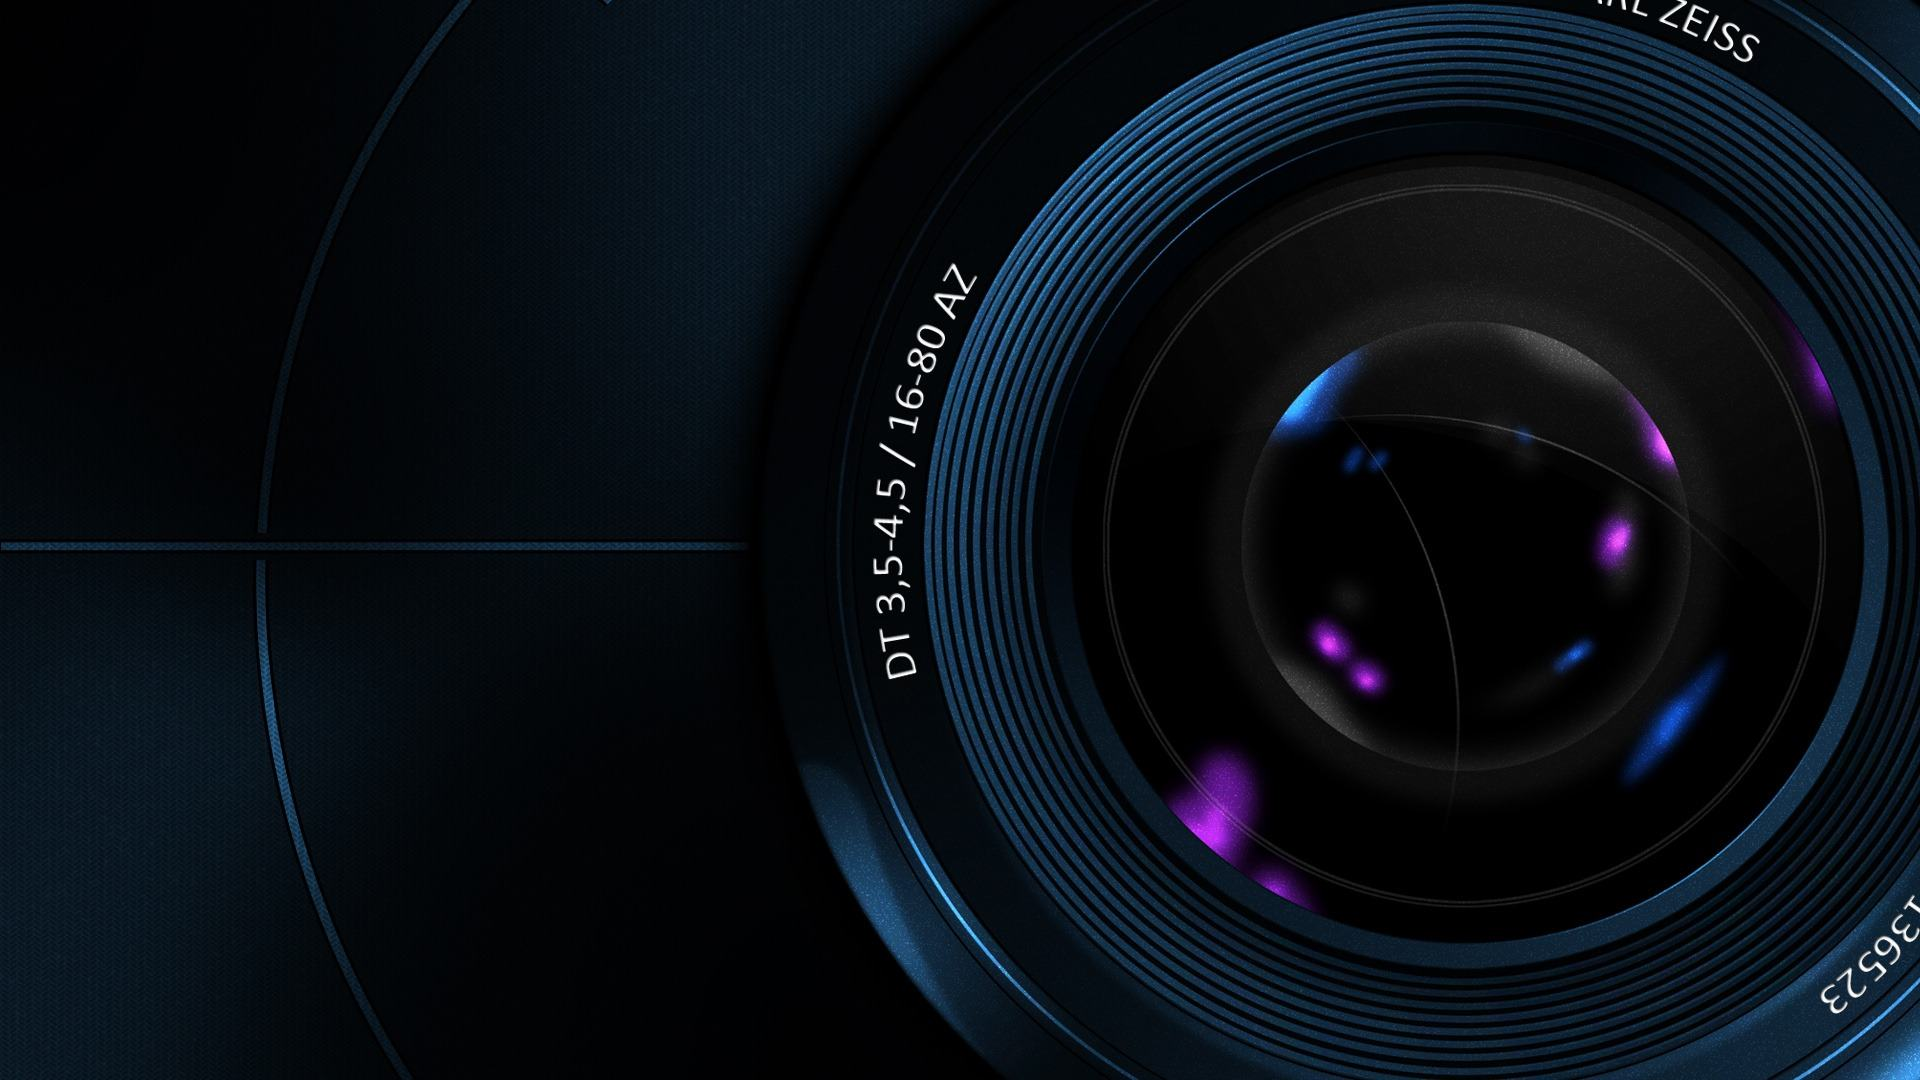 Camera Wallpaper Desktop Hd Pictures 4 HD Wallpapers